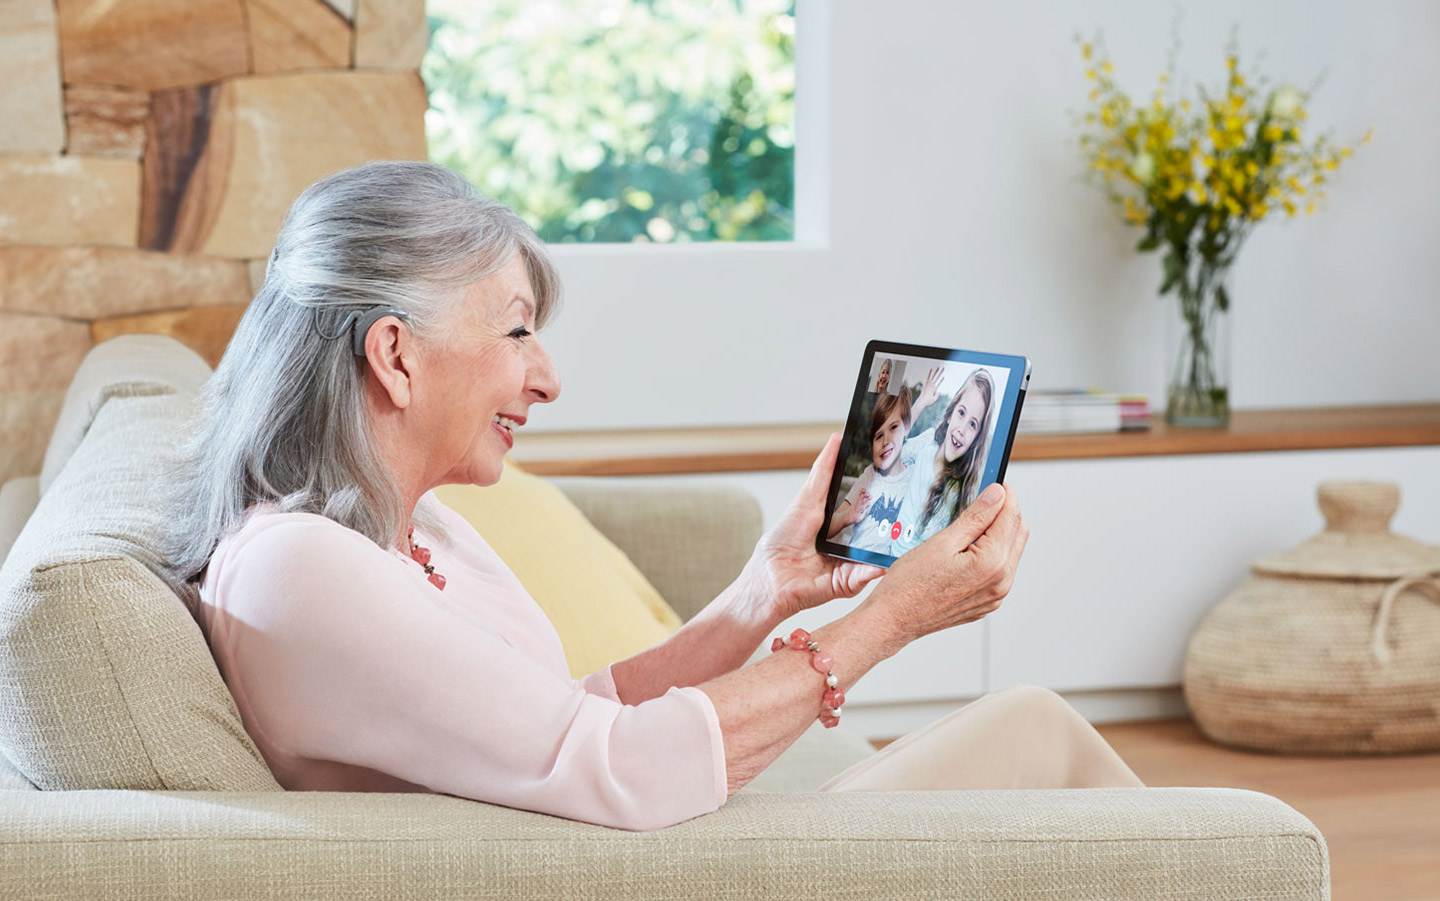 A woman with a Cochlear implant uses an iPad